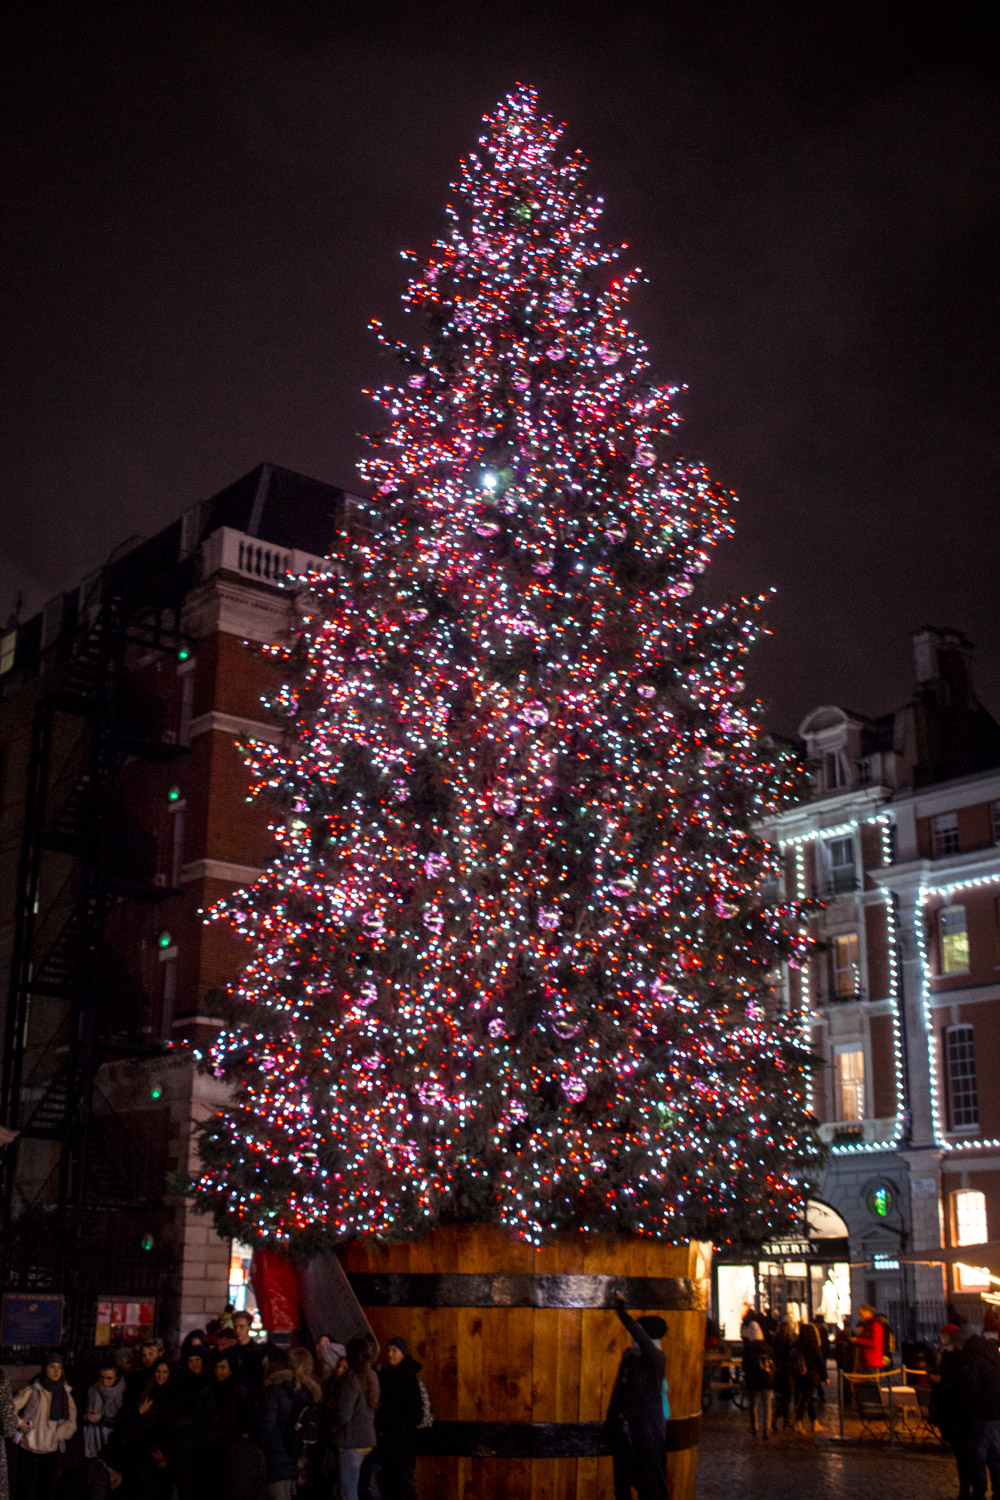 Huge Christmas tree in Covent Garden London